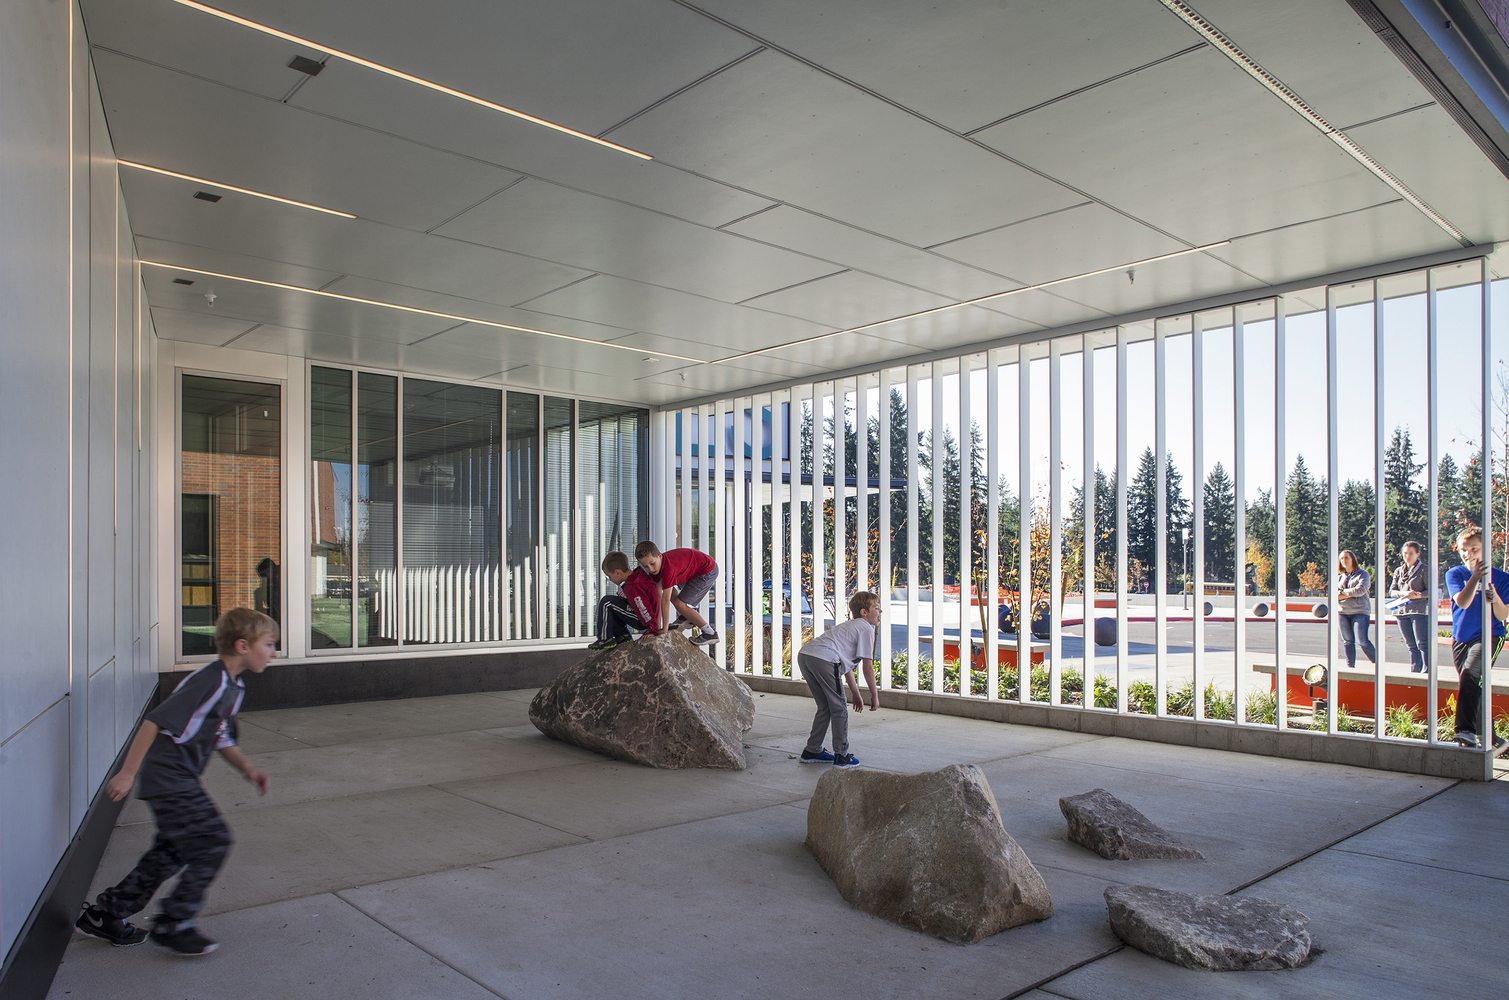 Lake Wilderness Elementary School / TCF Architecture